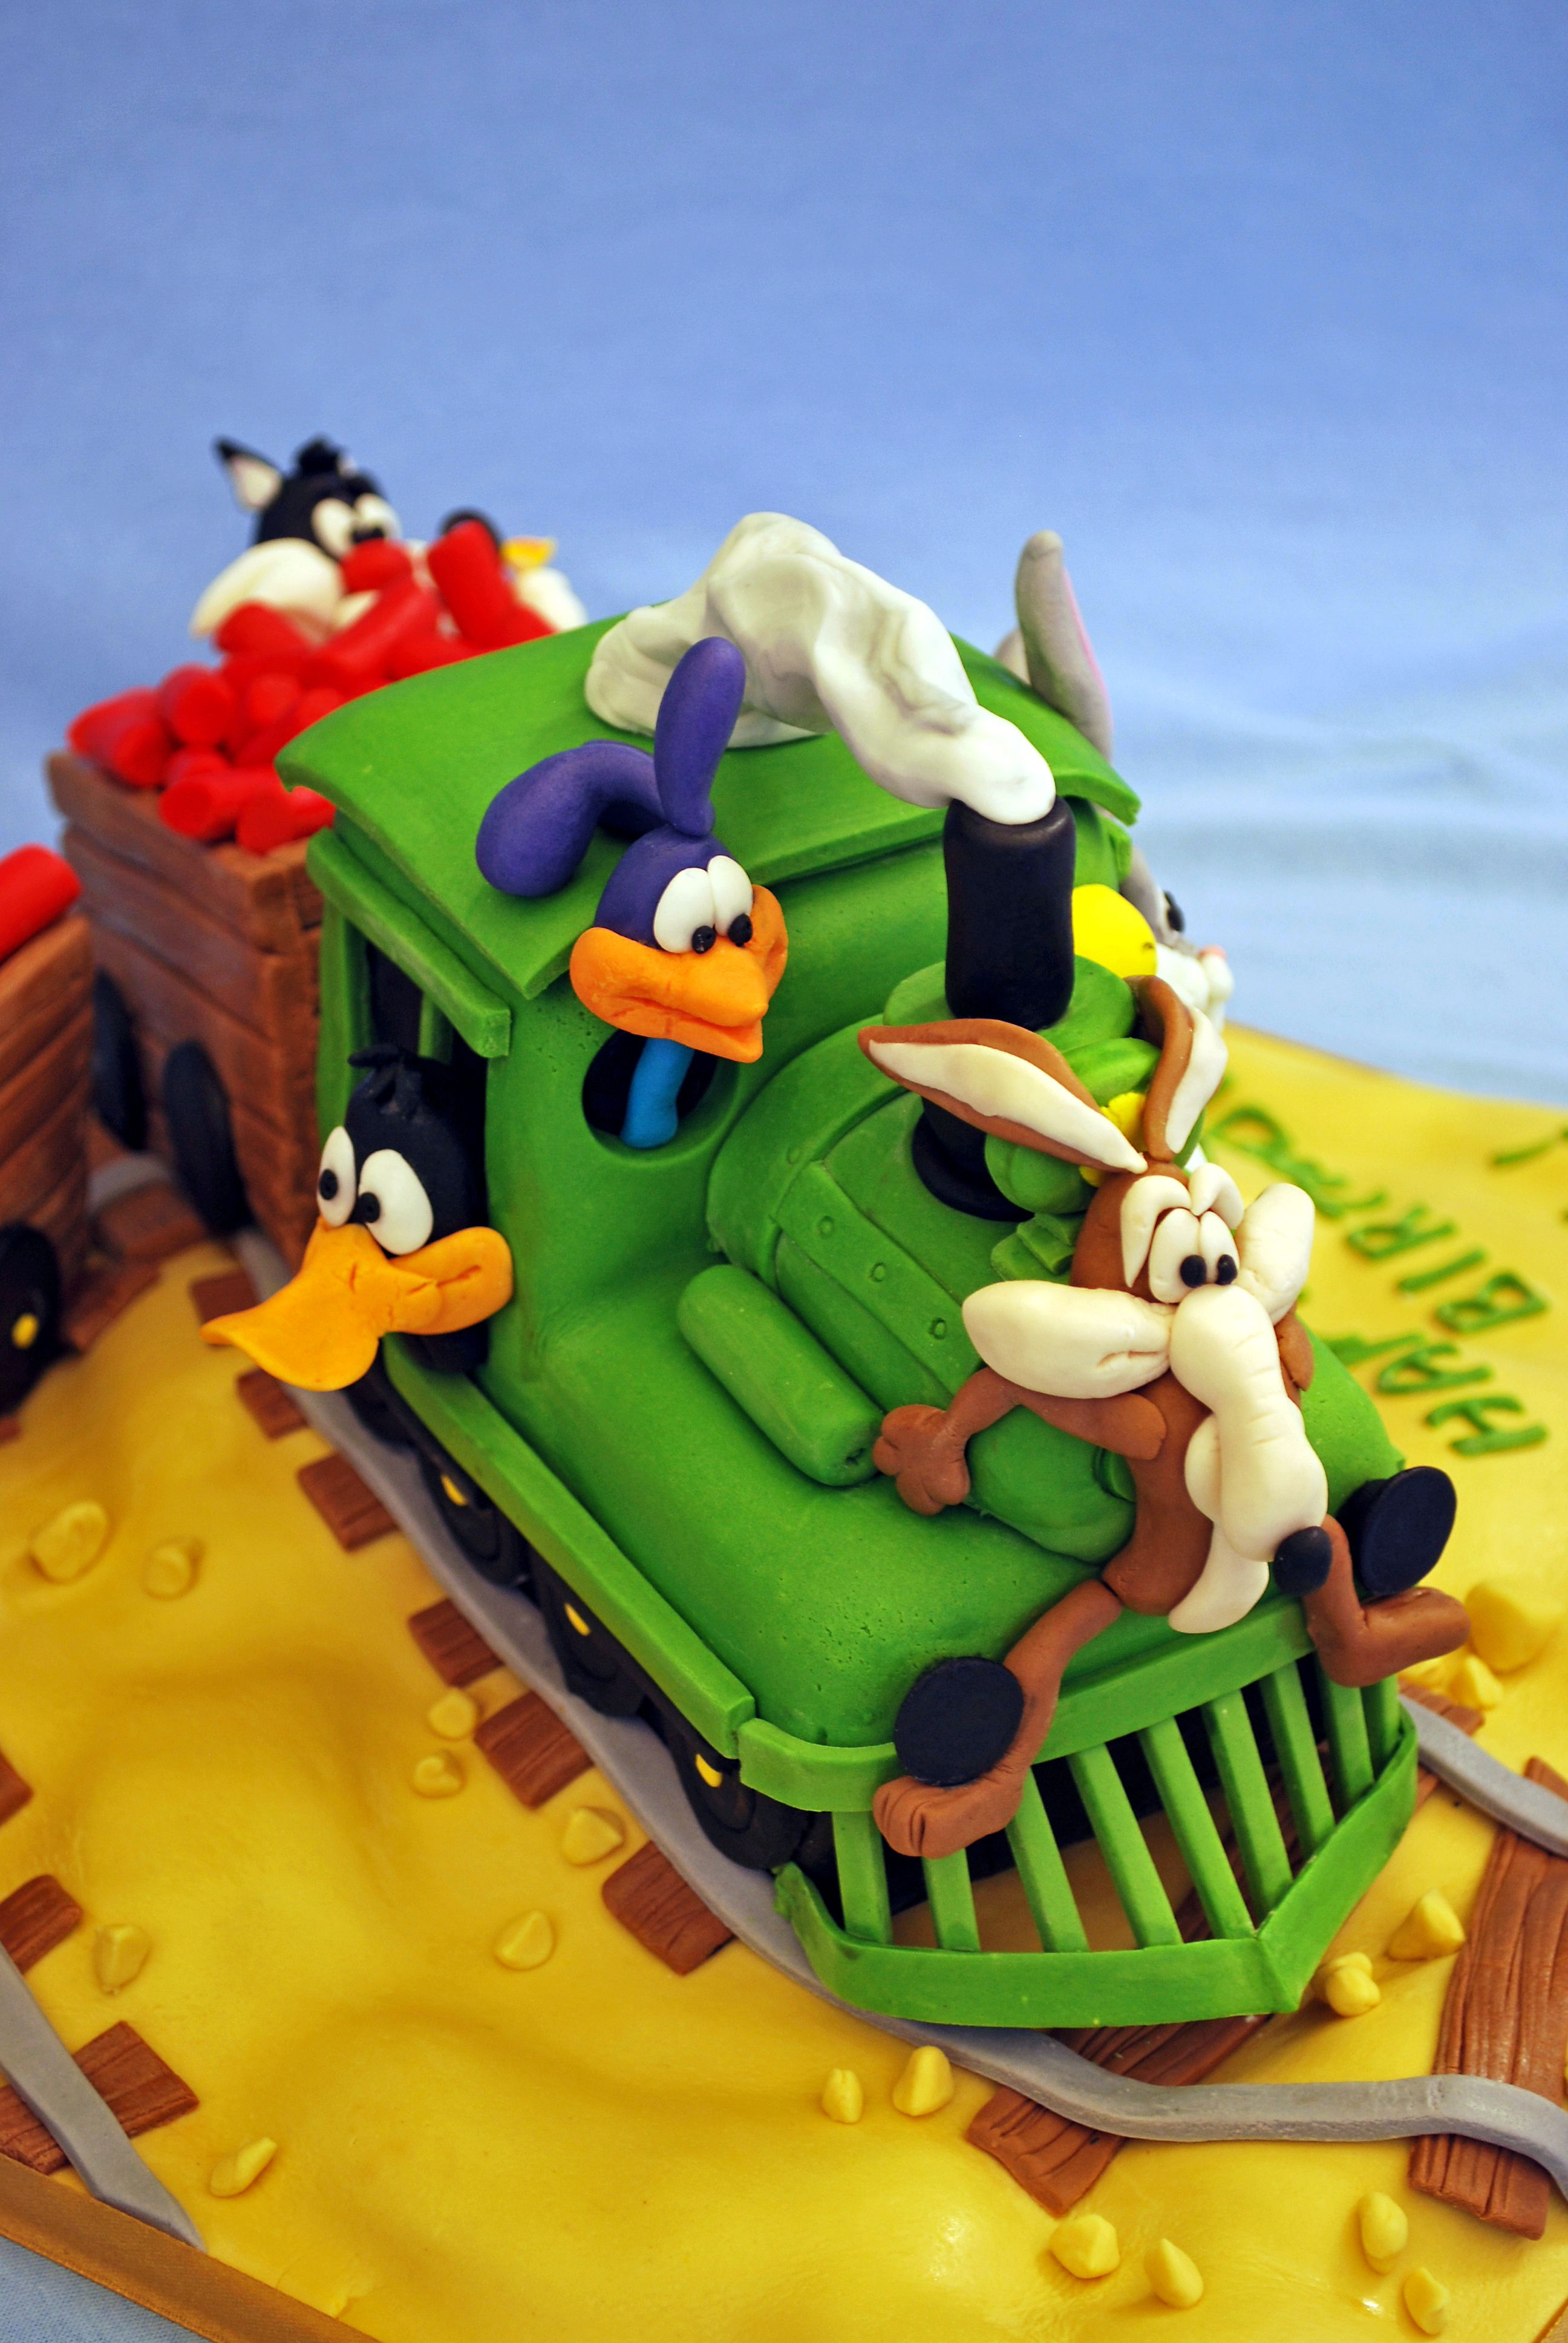 Birthday Cake Photos Looney Tunes Characters On A Train